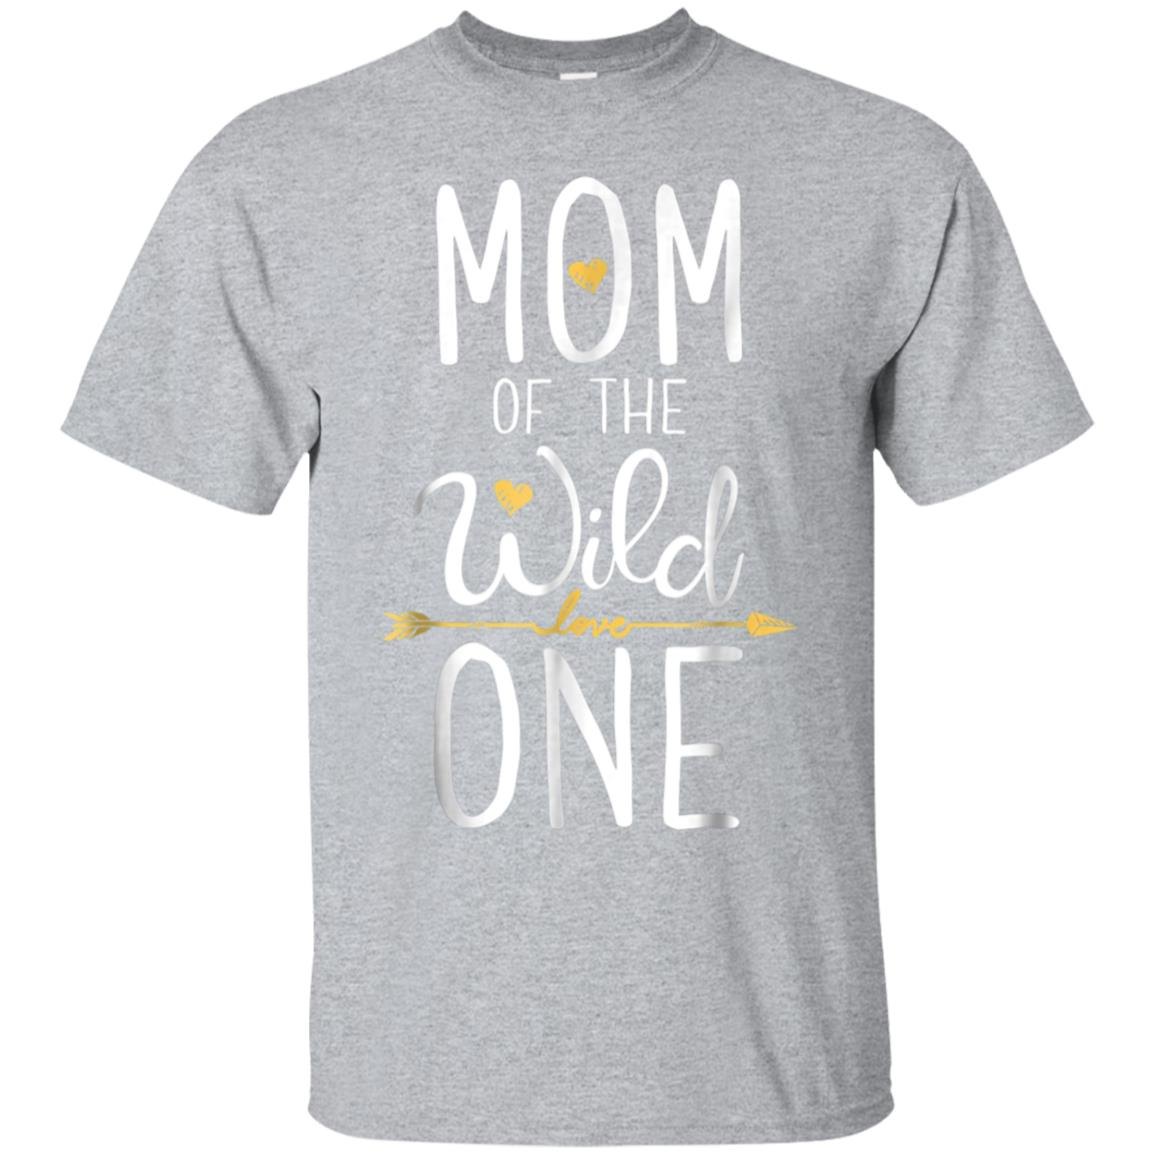 f3df1dff Awesome mom of the wild one t shirt mother moms mommy women gifts -  99promocode